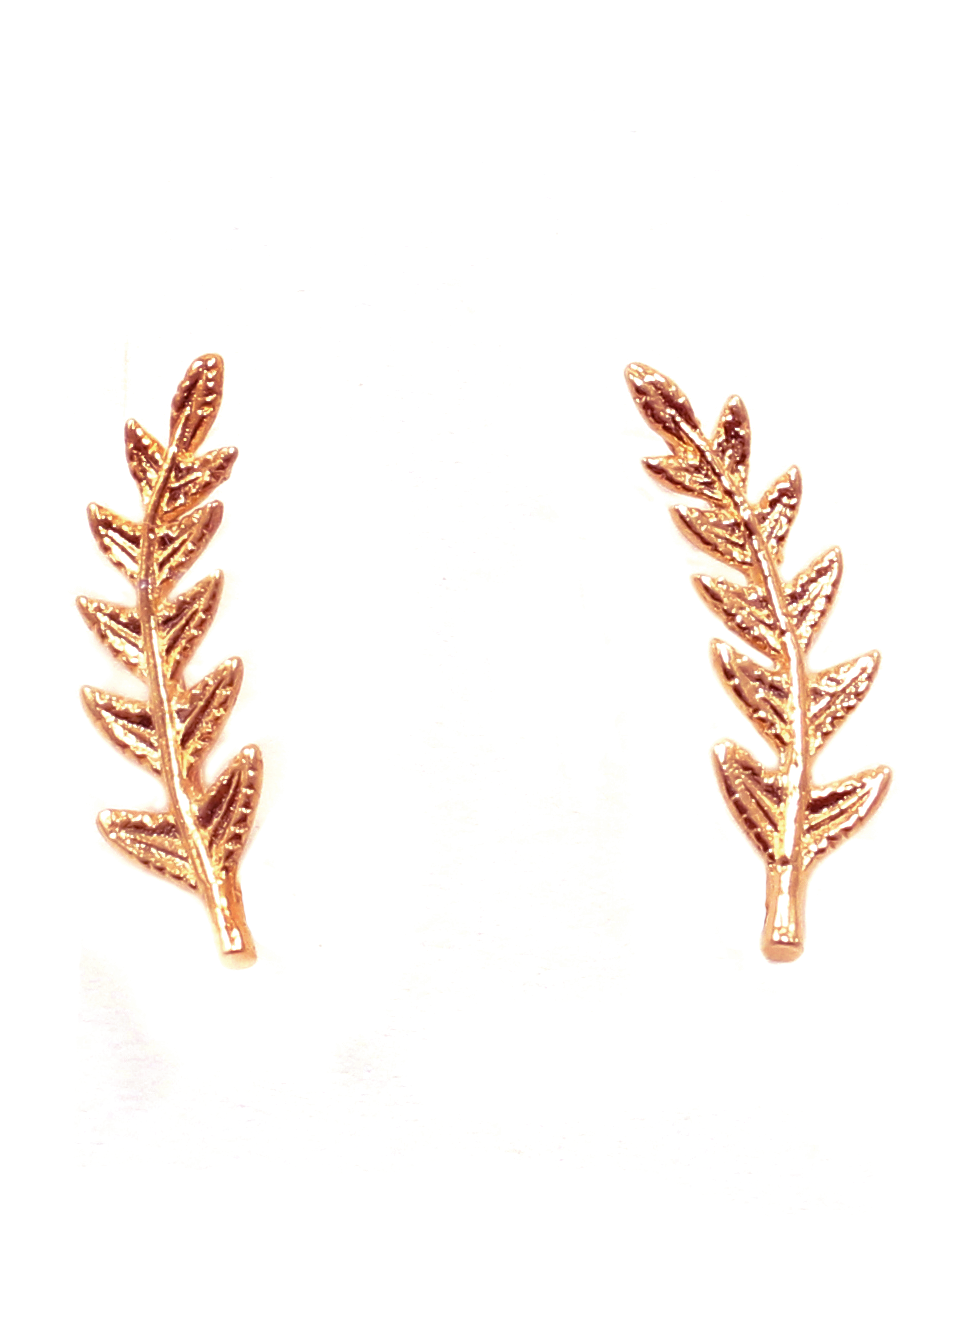 LEAF EAR CLIMBER IN ROSE GOLD | Maria Kamara: handcrafted silver earrings, ethically sourced earrings, handmade designer earrings, elegant handmade jewelry